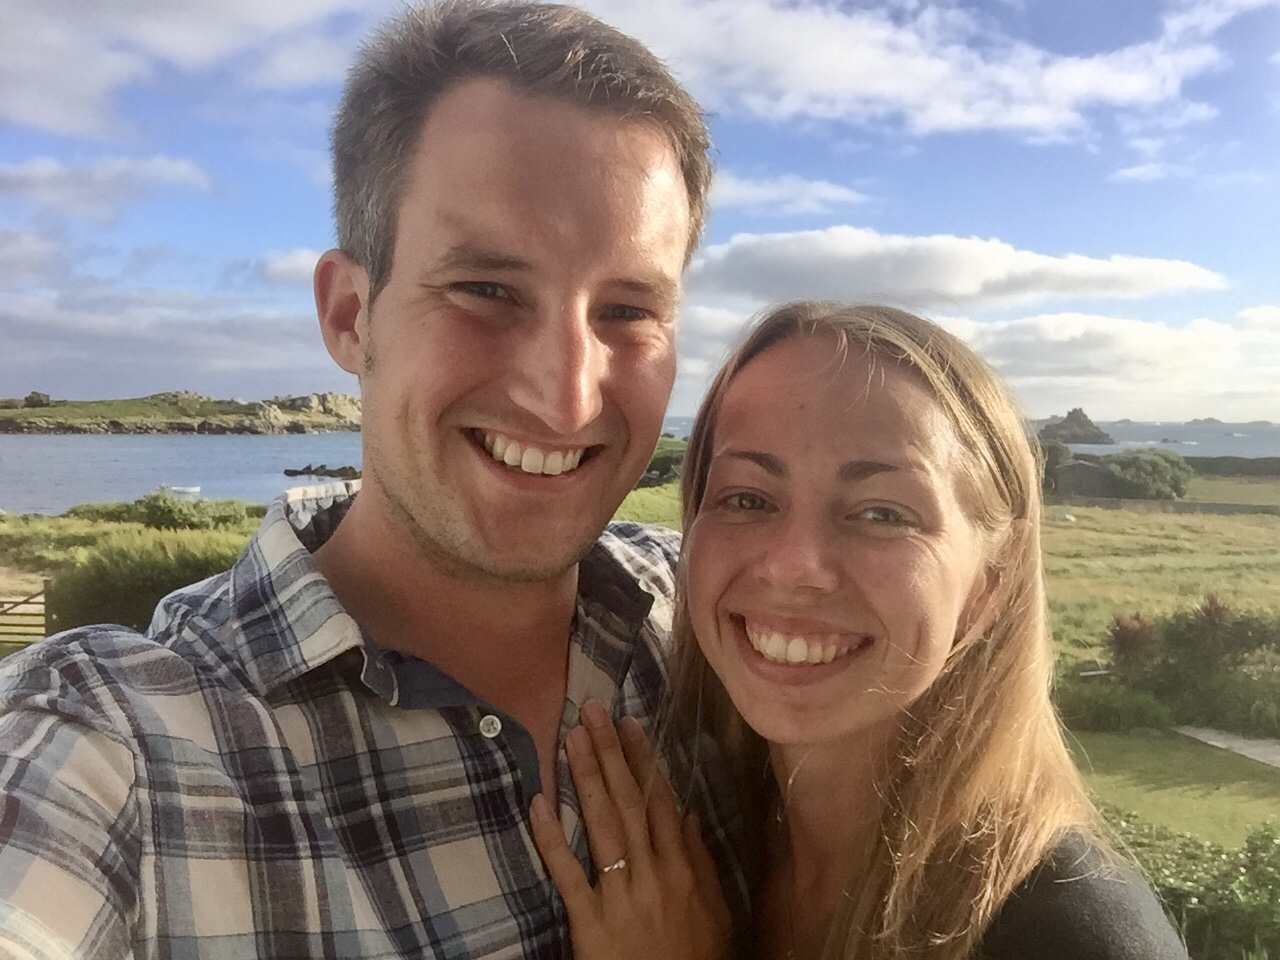 """Thank you so much - this is amazing news! We get married on 23rd June on Bryher so literally could not have come at a better time! We'll be putting the money towards making sure we have the most memorable day possible with all our friends and family! I've attached a pic of us both on Bryher when I proposed last year."""